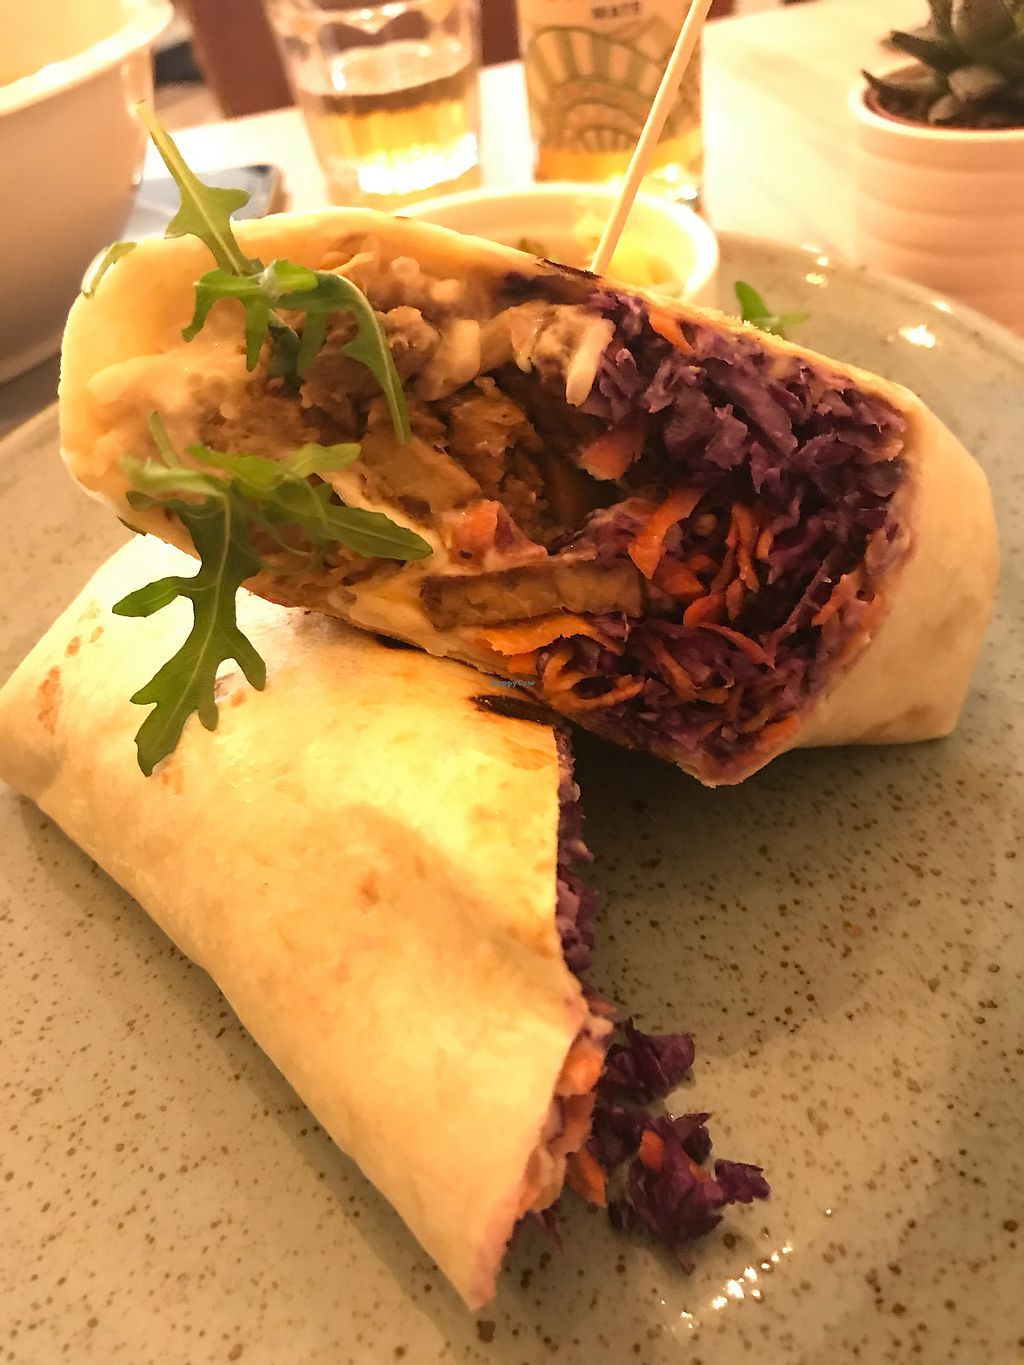 "Photo of Balans Bistro  by <a href=""/members/profile/Beaa"">Beaa</a> <br/>Seitan wrap <br/> January 13, 2018  - <a href='/contact/abuse/image/84394/346119'>Report</a>"